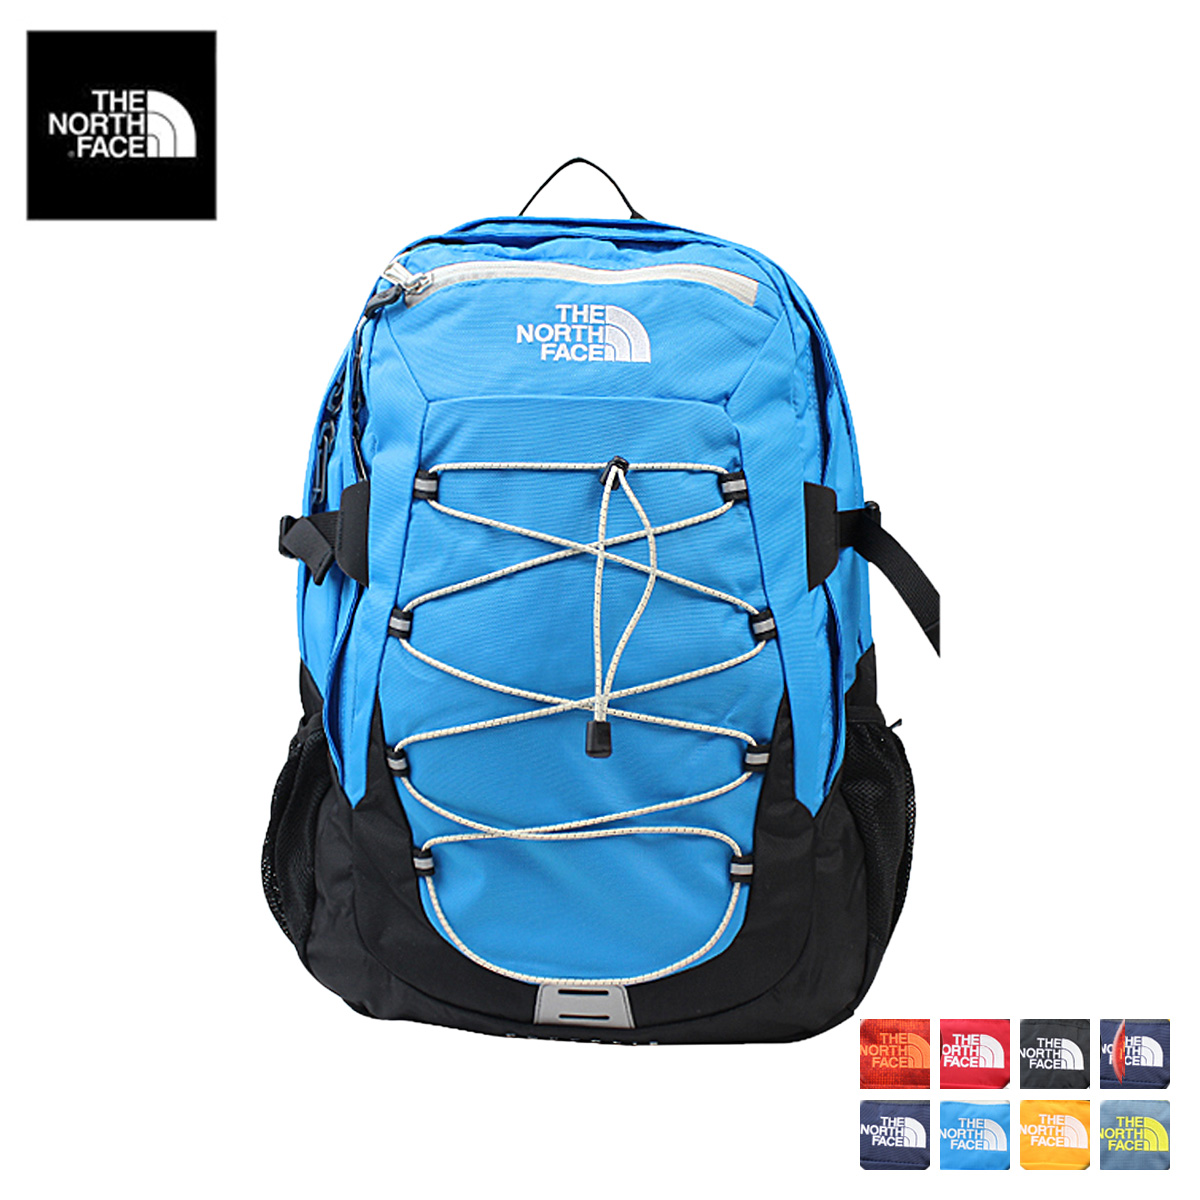 cb264a1439d3 THE NORTH FACE north face rucksack backpack daypack 7 color CE82 29L BOREALIS  BACKPACK men women